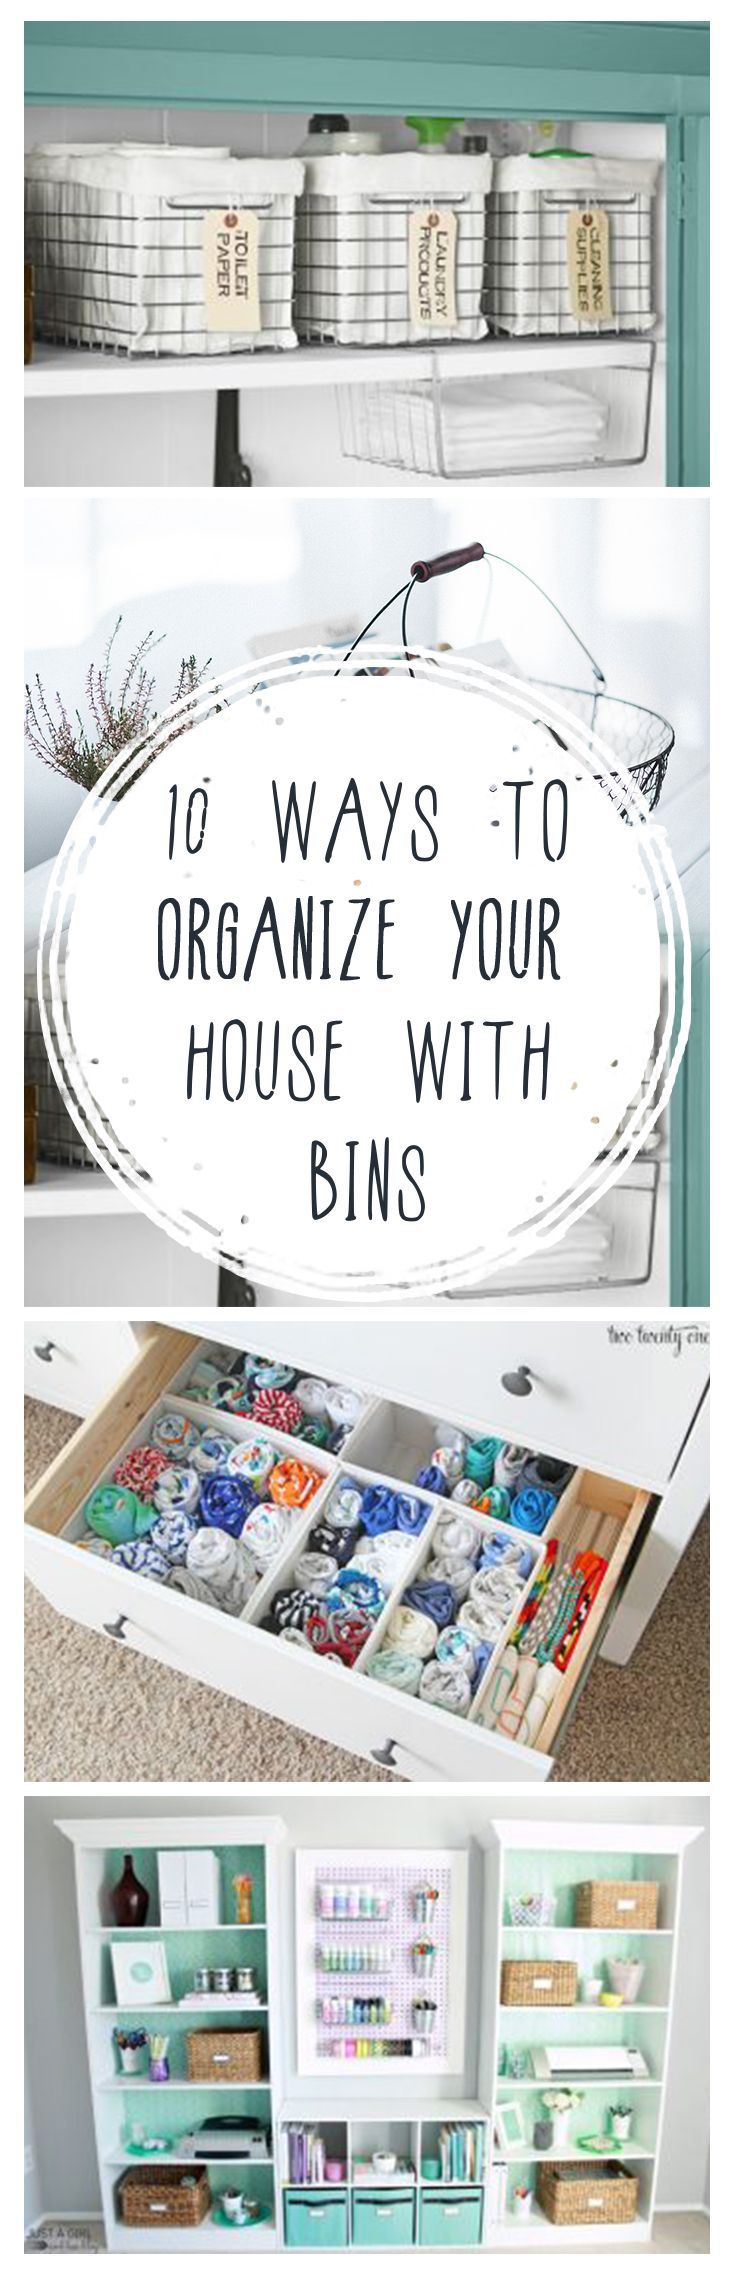 10 Ways to Organize Your House with Bins -